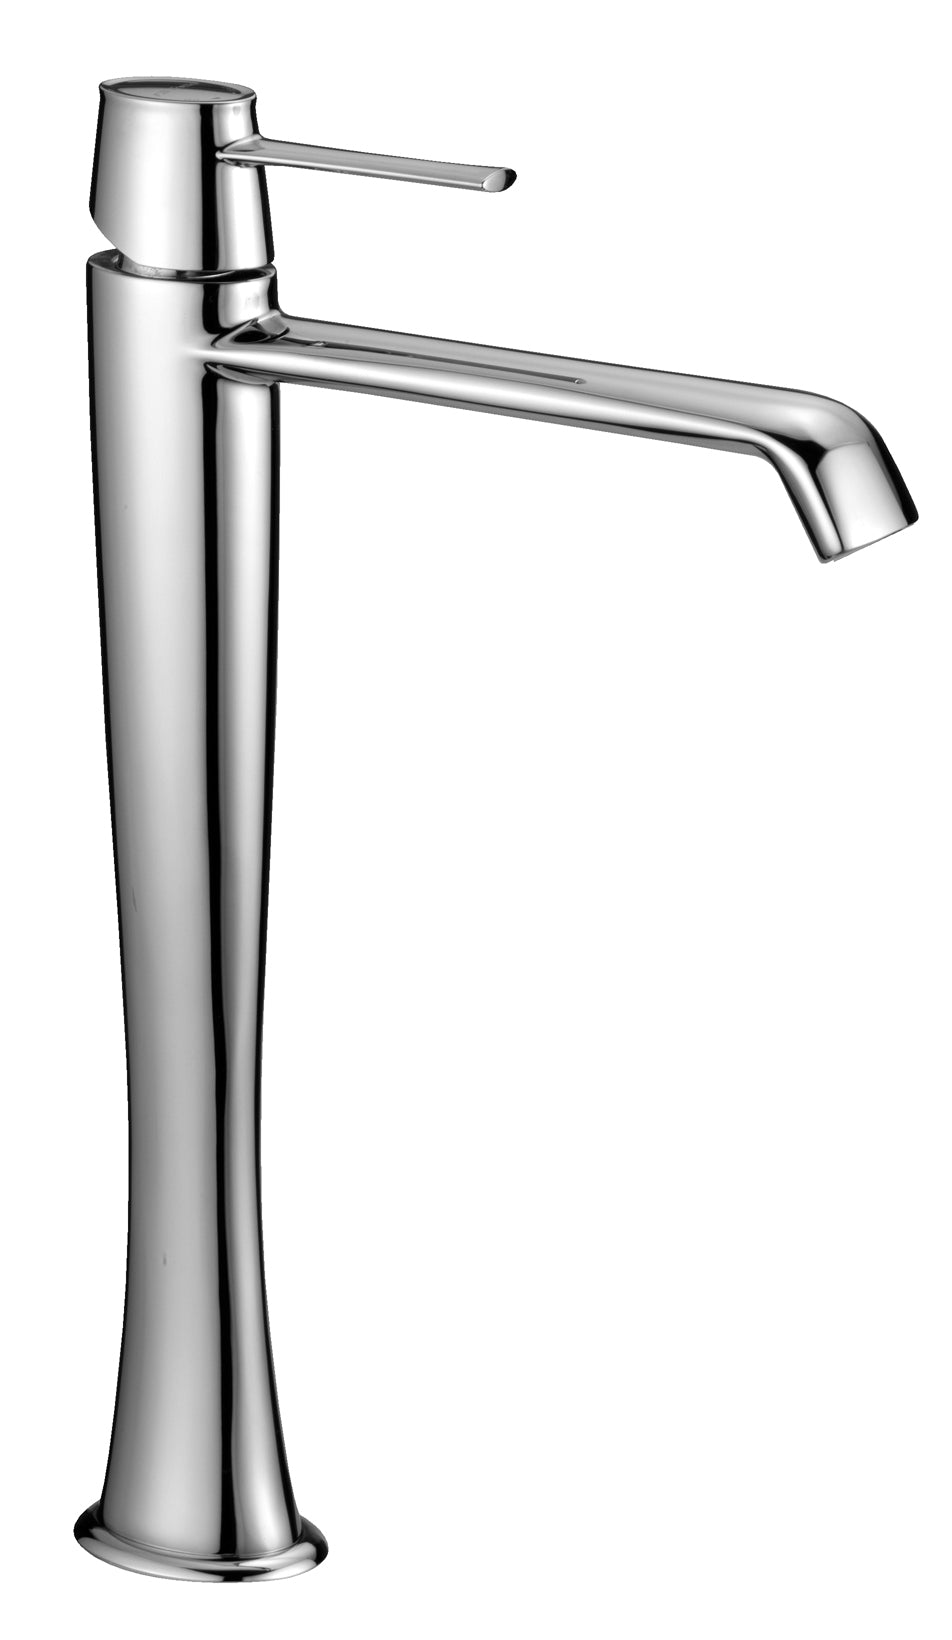 Frattini Tall Basin mixer DELIZIA 58065 00 C08